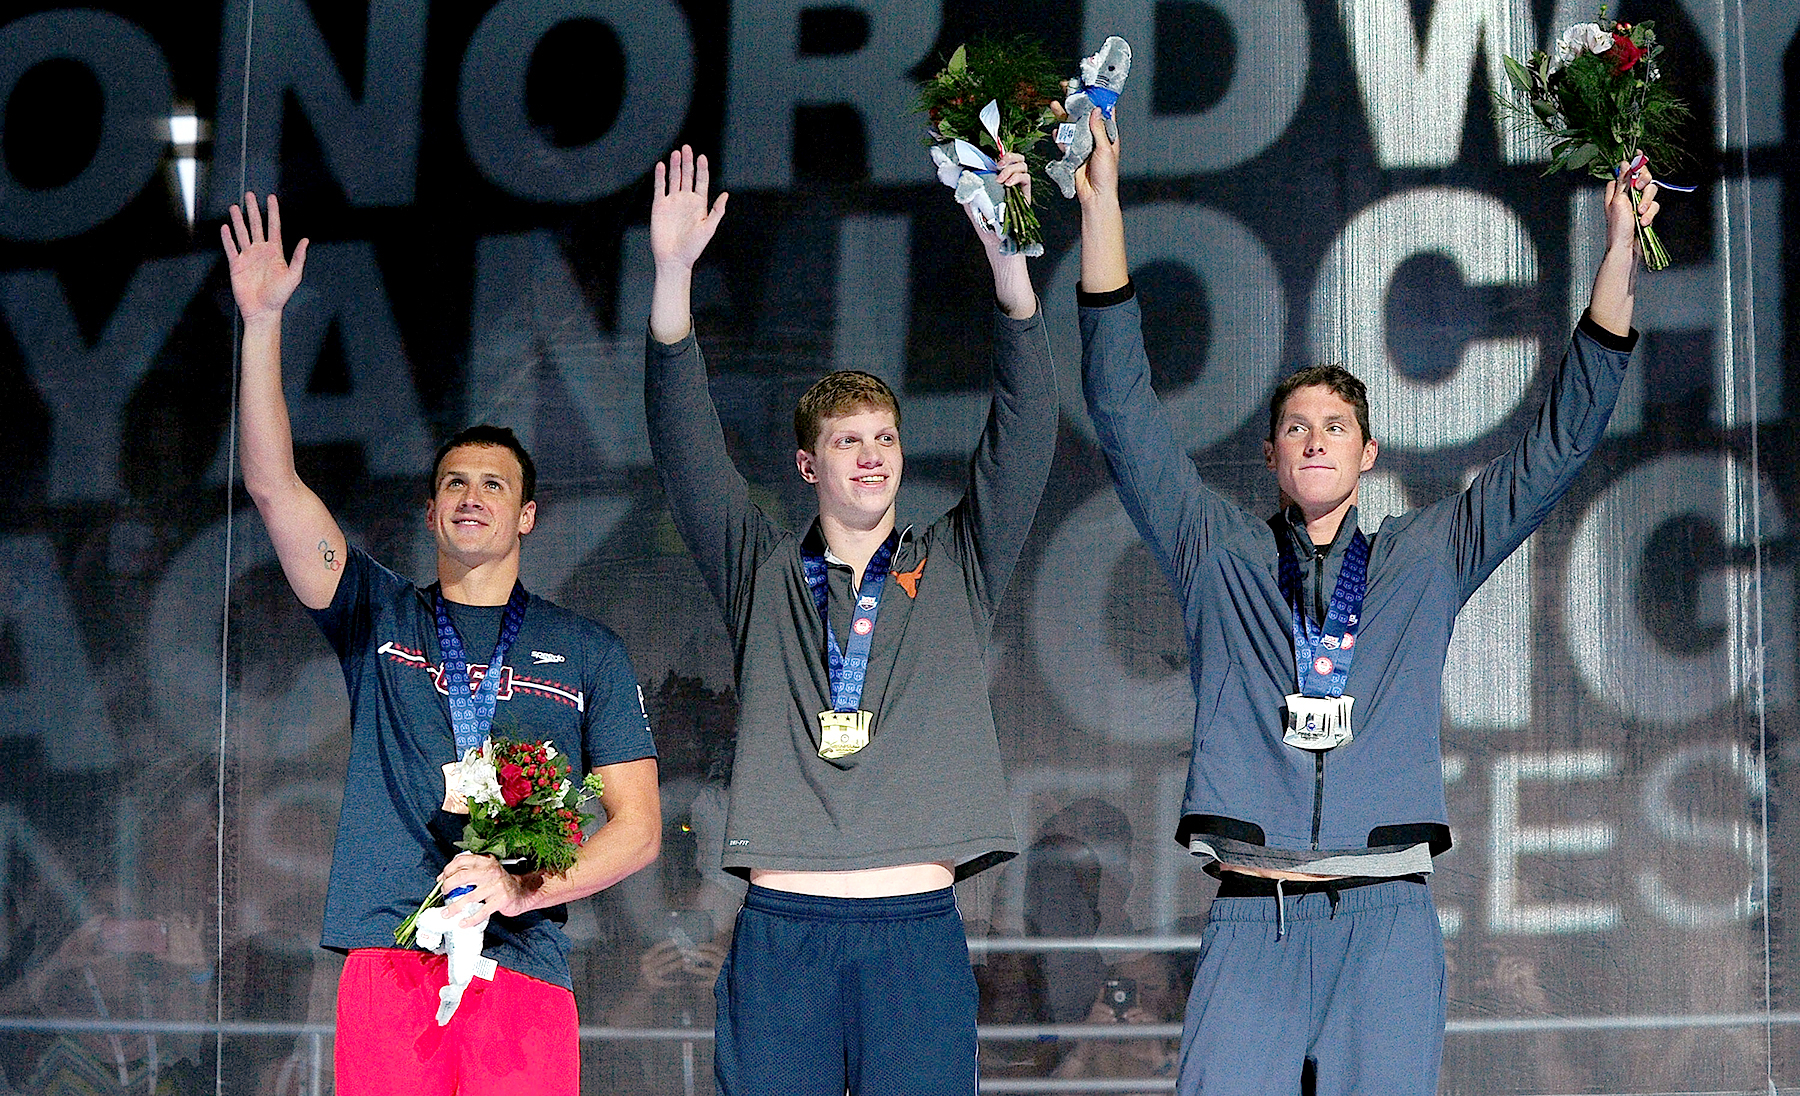 Ryan Lochte, Townley Haas and Conor Dwyer (from left) of the United States participate in the award ceremony for the Men's 200 Meter Freestyle during Day 3 of the 2016 U.S. Olympic Team Swimming Trials at CenturyLink Center on June 28, 2016, in Omaha, NB.